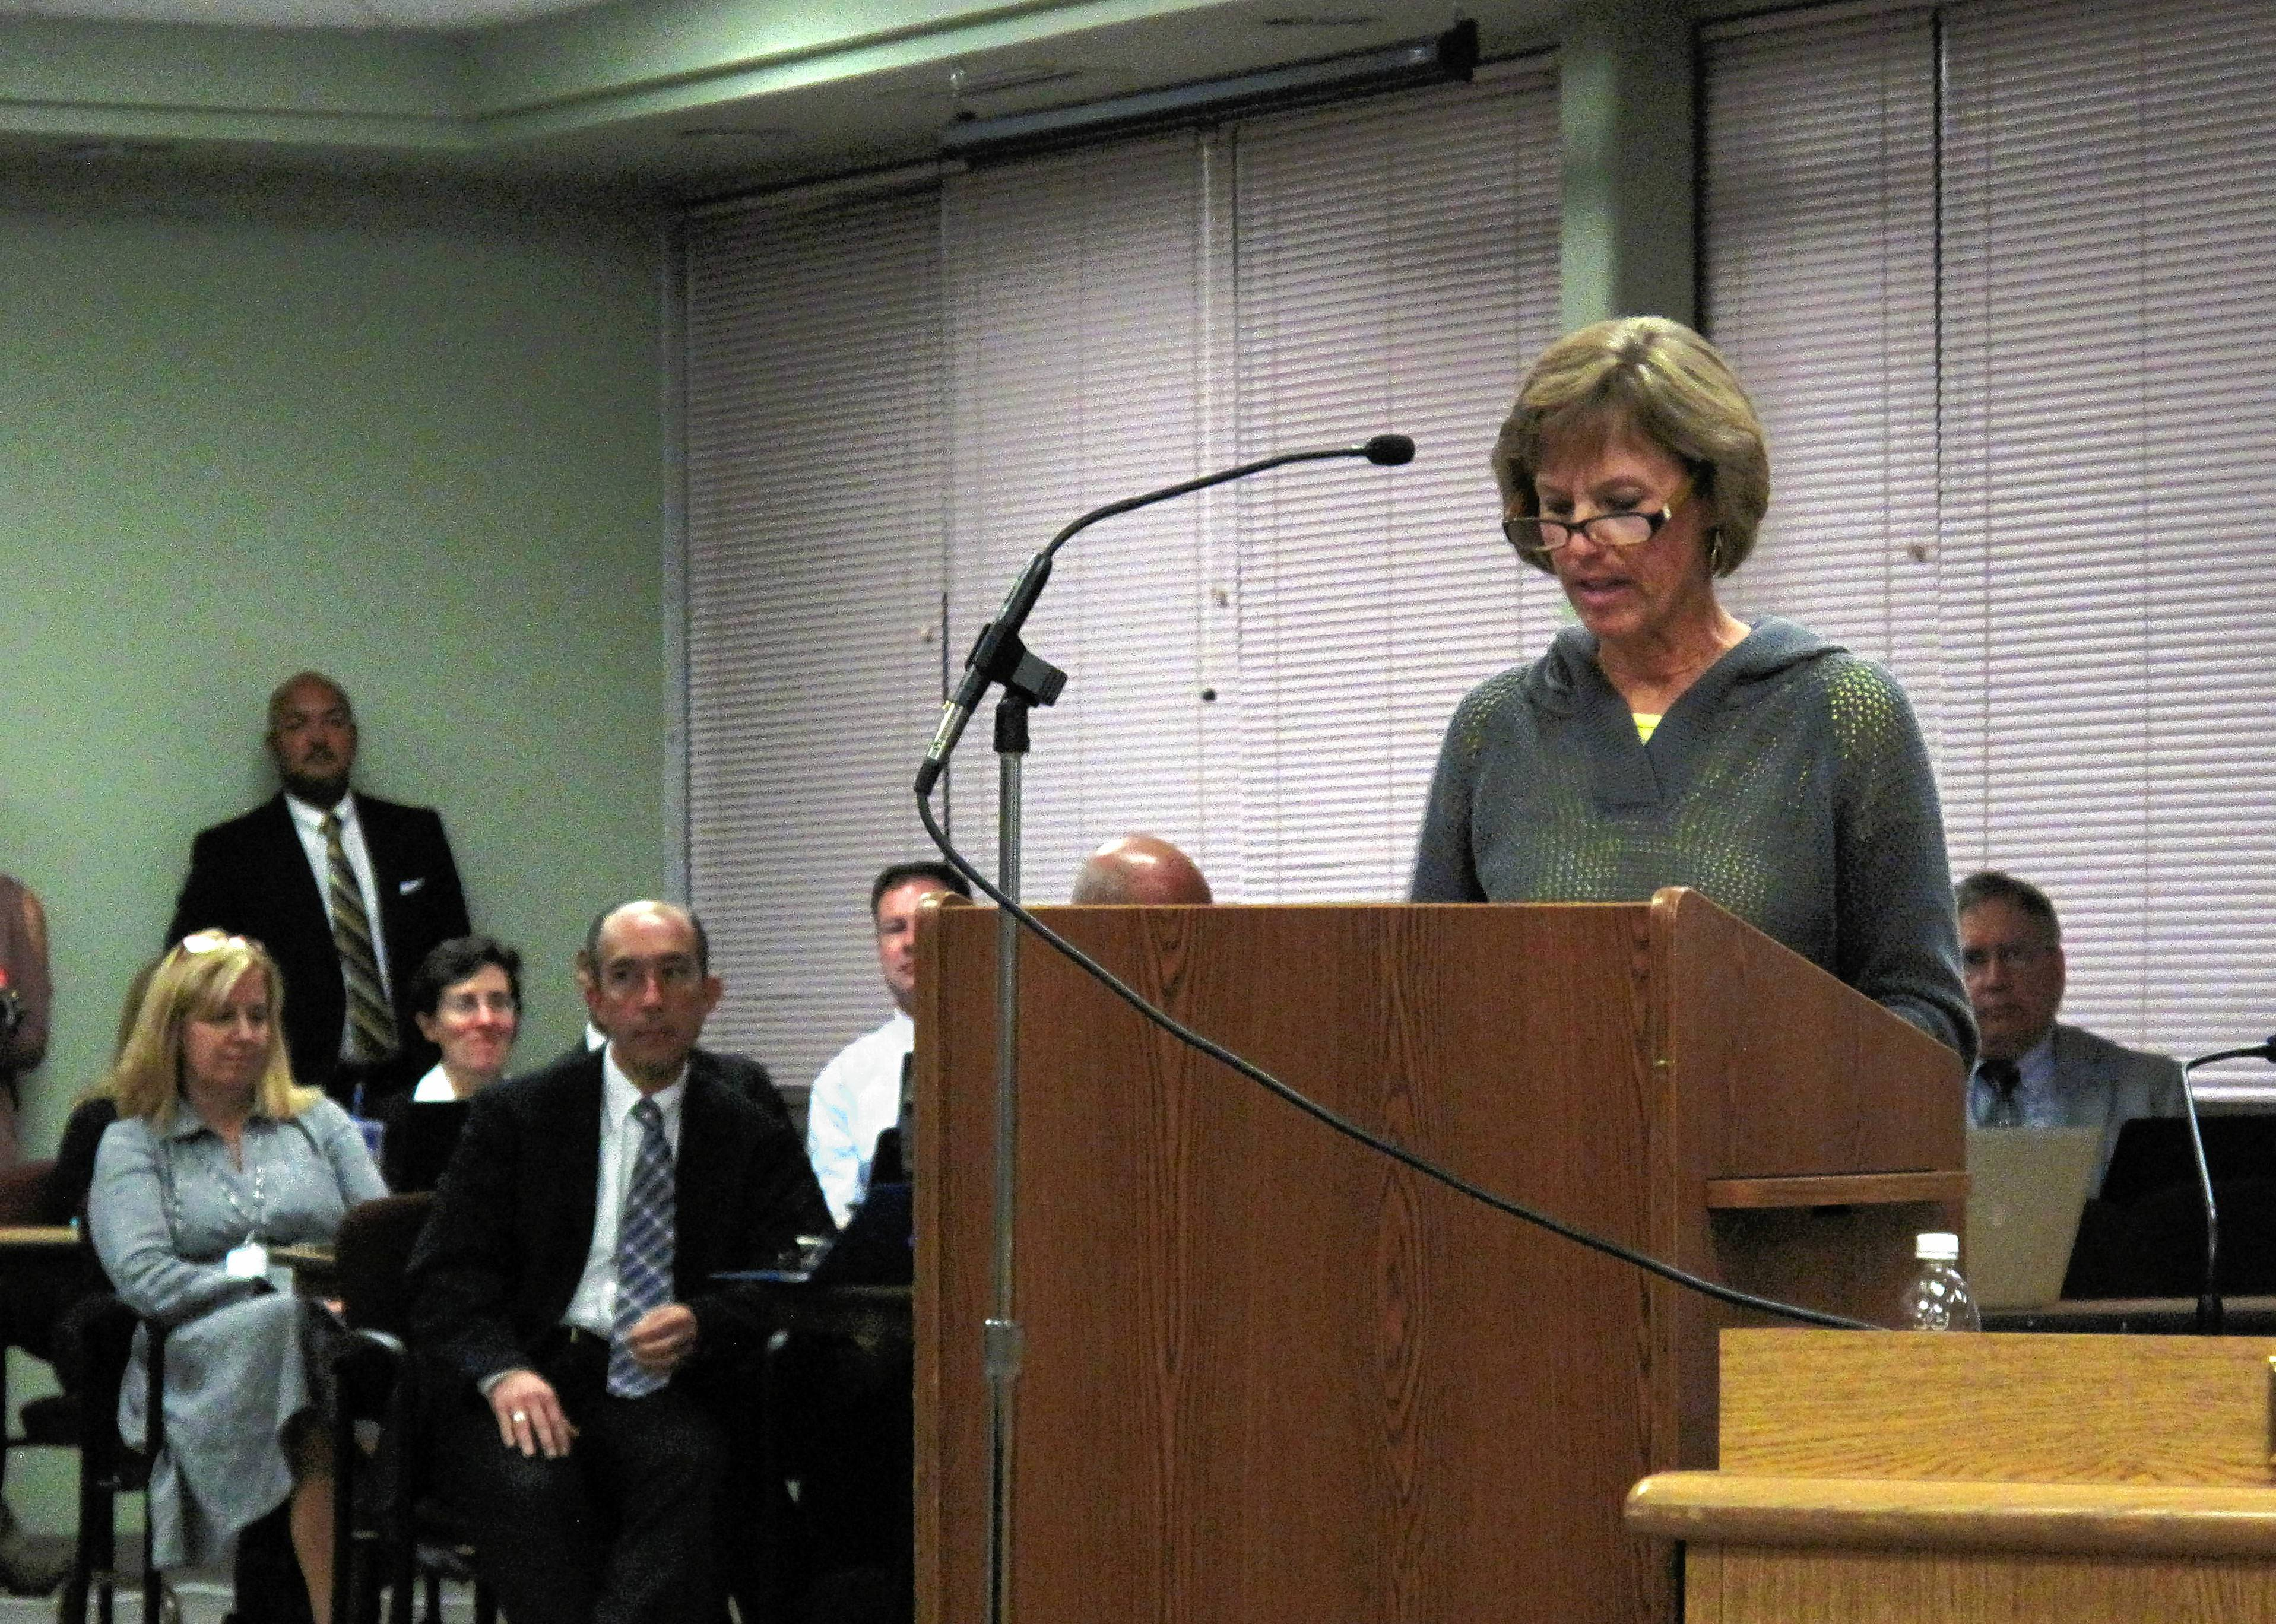 District 204 teachers want 'multiple working conditions' addressed